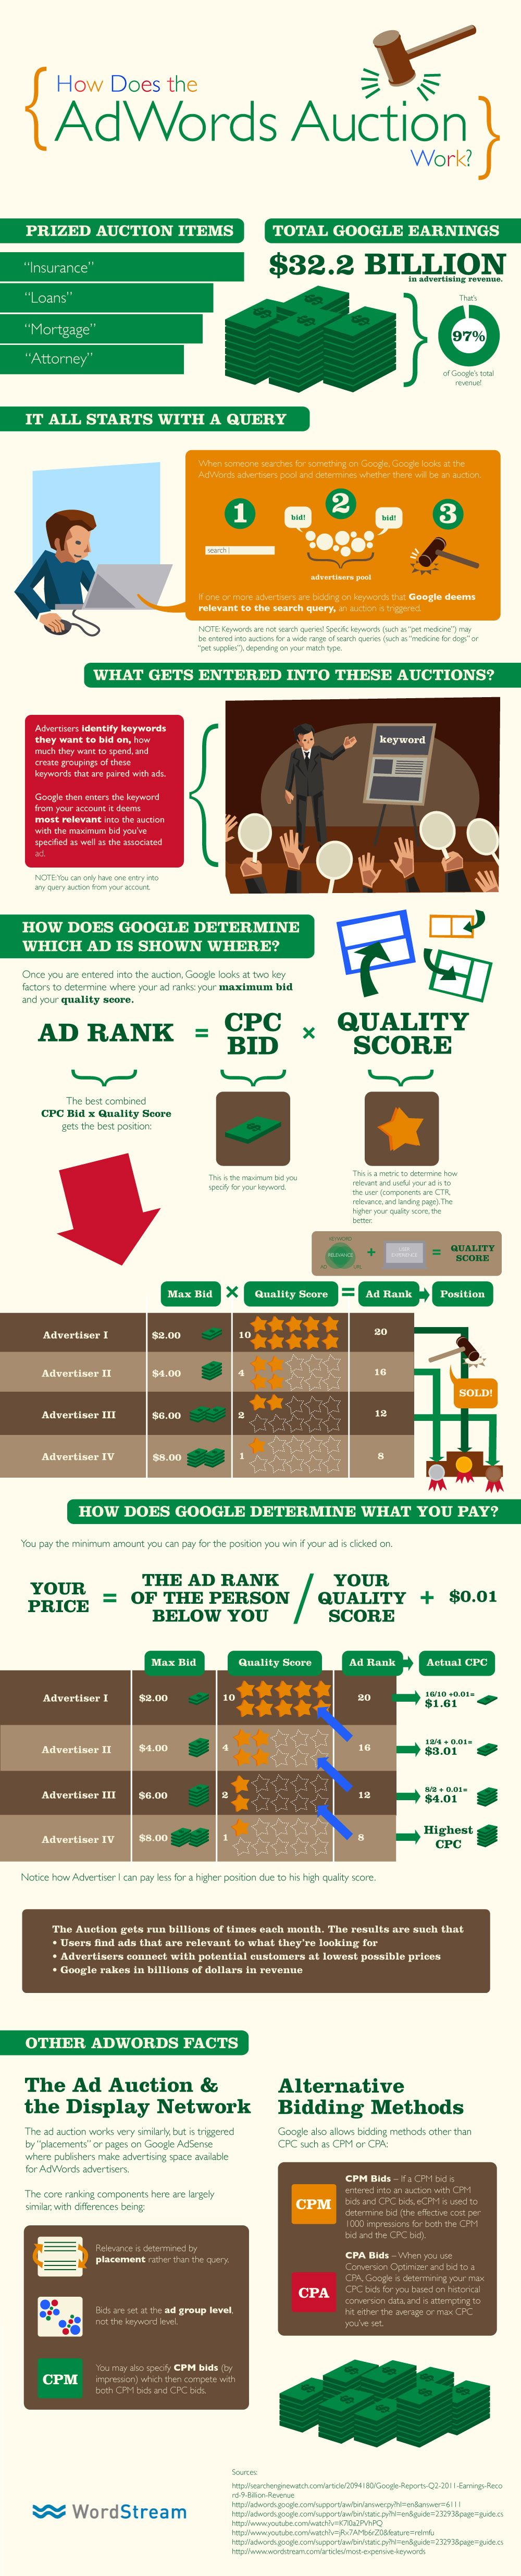 Google AdWords Auction - How Does it Work? [infographic]